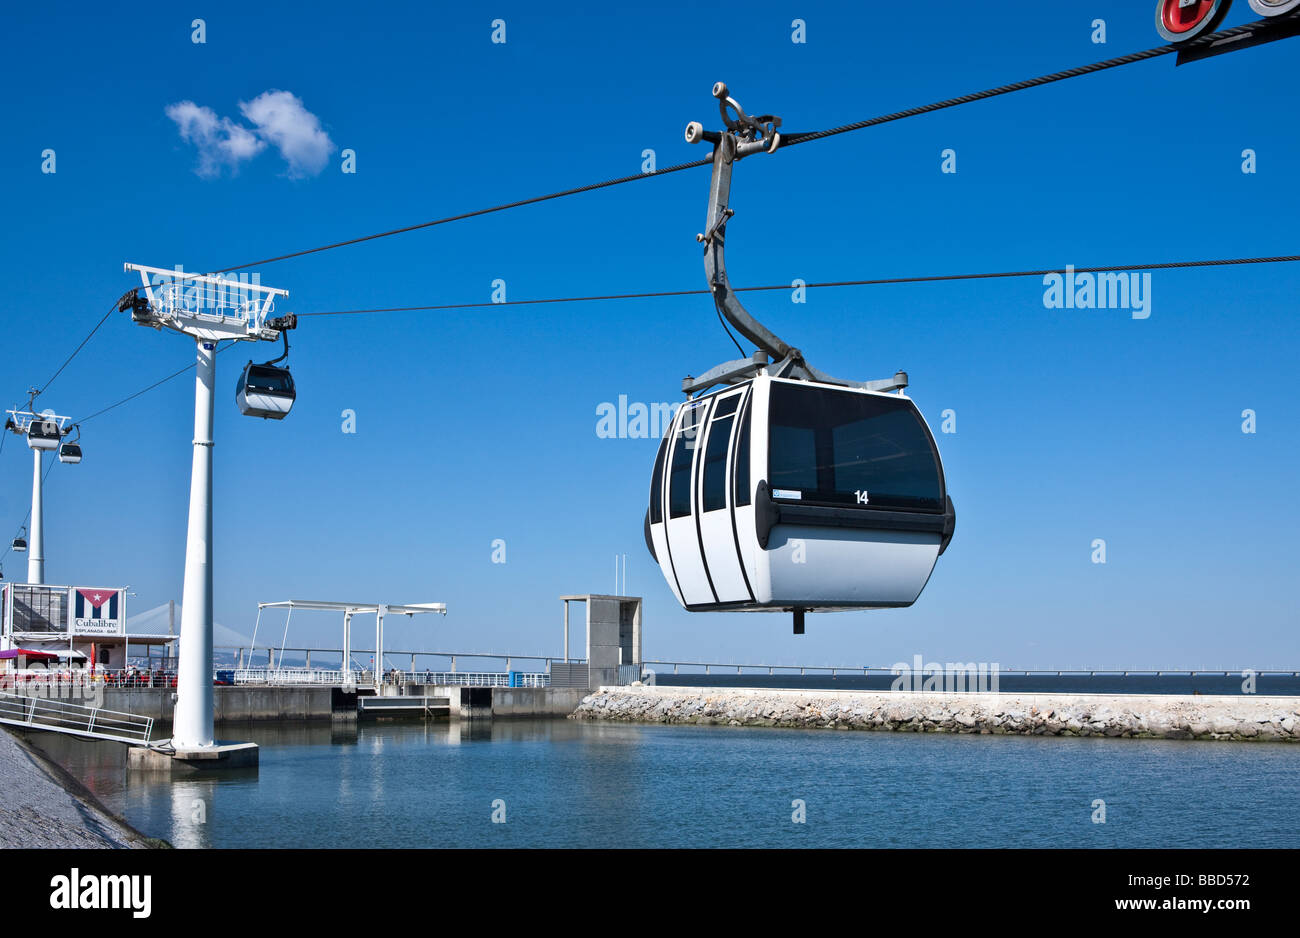 Lisbon the cableway in the Parque Das Nacoes exhibition area - Stock Image